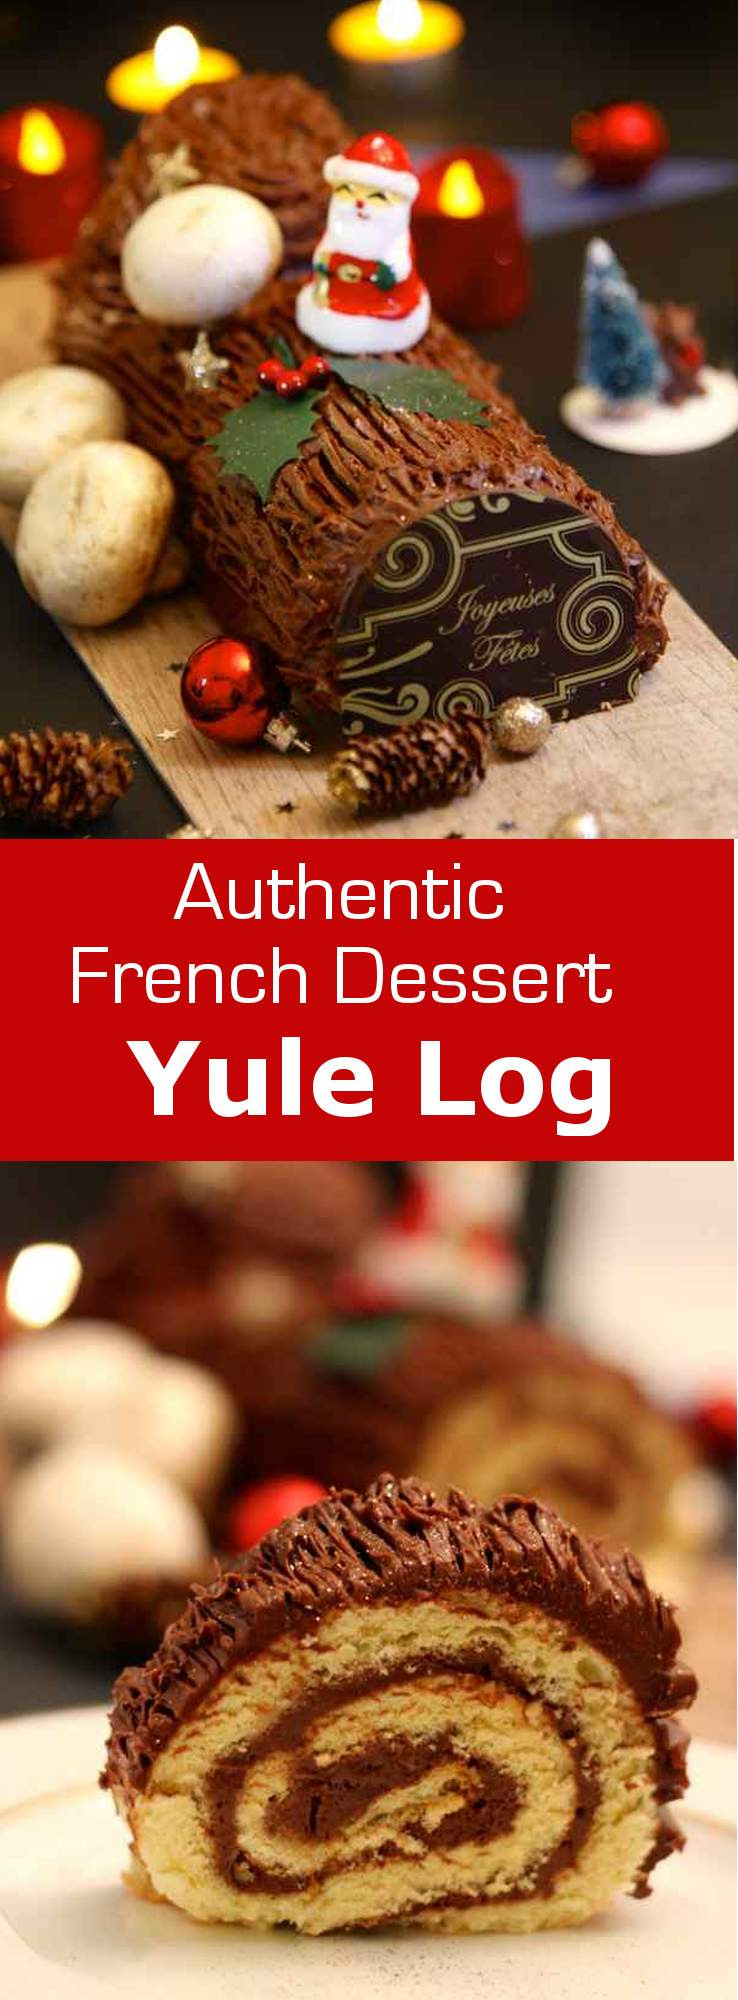 Traditional Christmas Desserts  Chocolate Yule Log Authentic French Recipe